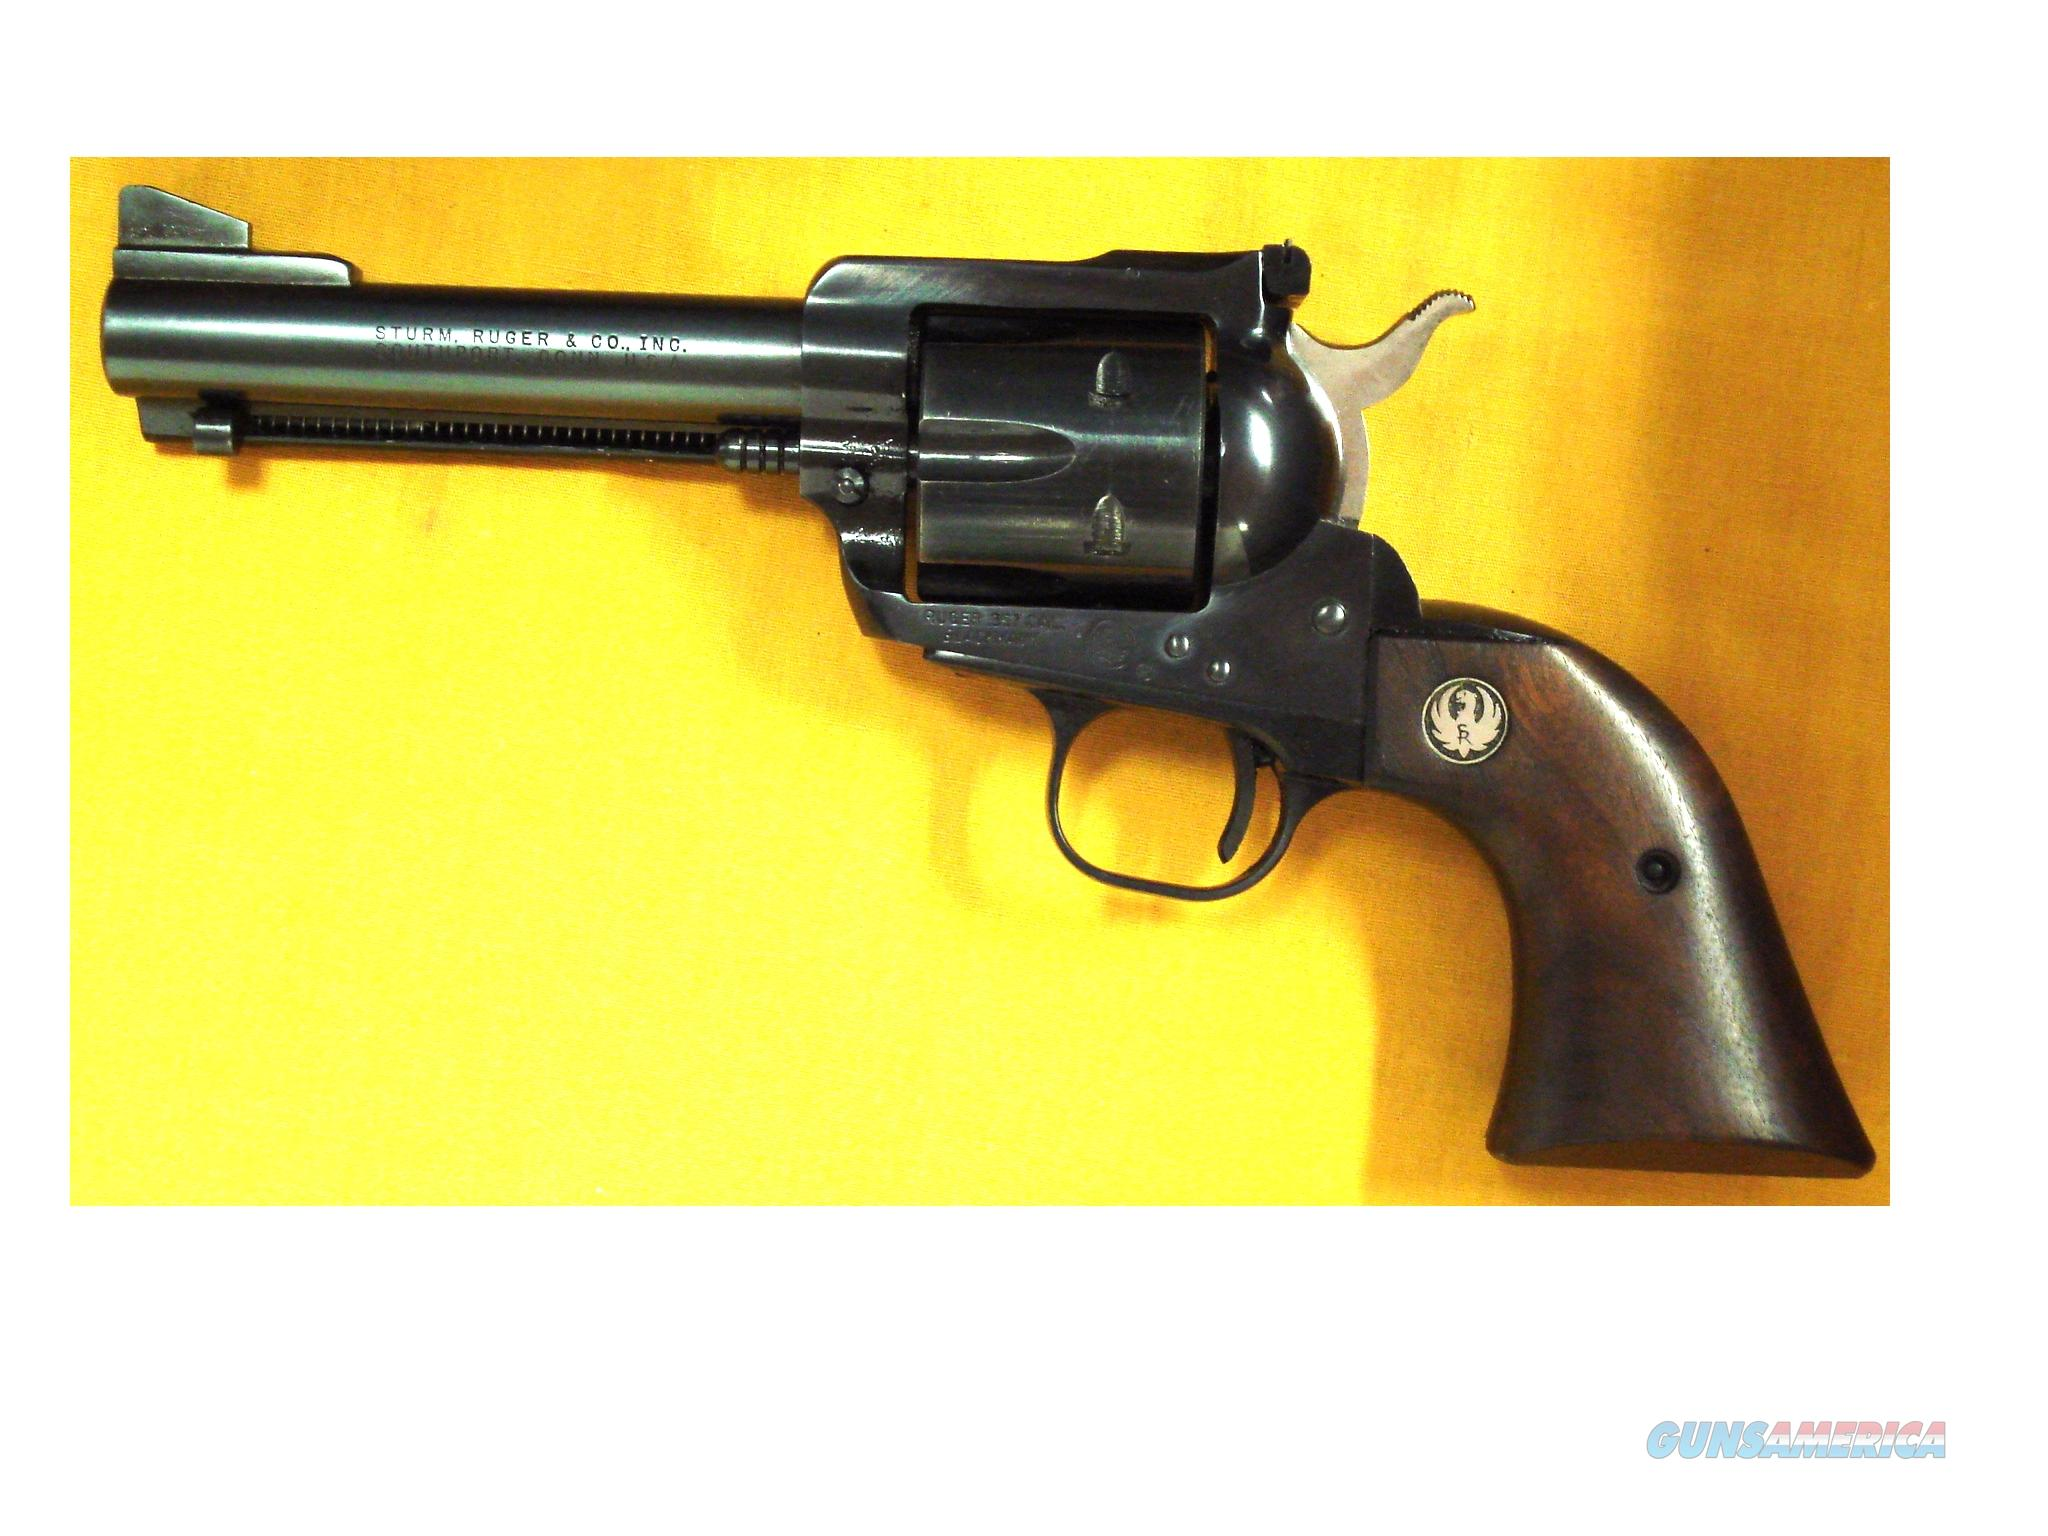 "RUGER BLACKHAWK .357 MAG 4 1/2"" BARREL  Guns > Pistols > Ruger Single Action Revolvers > Blackhawk Type"